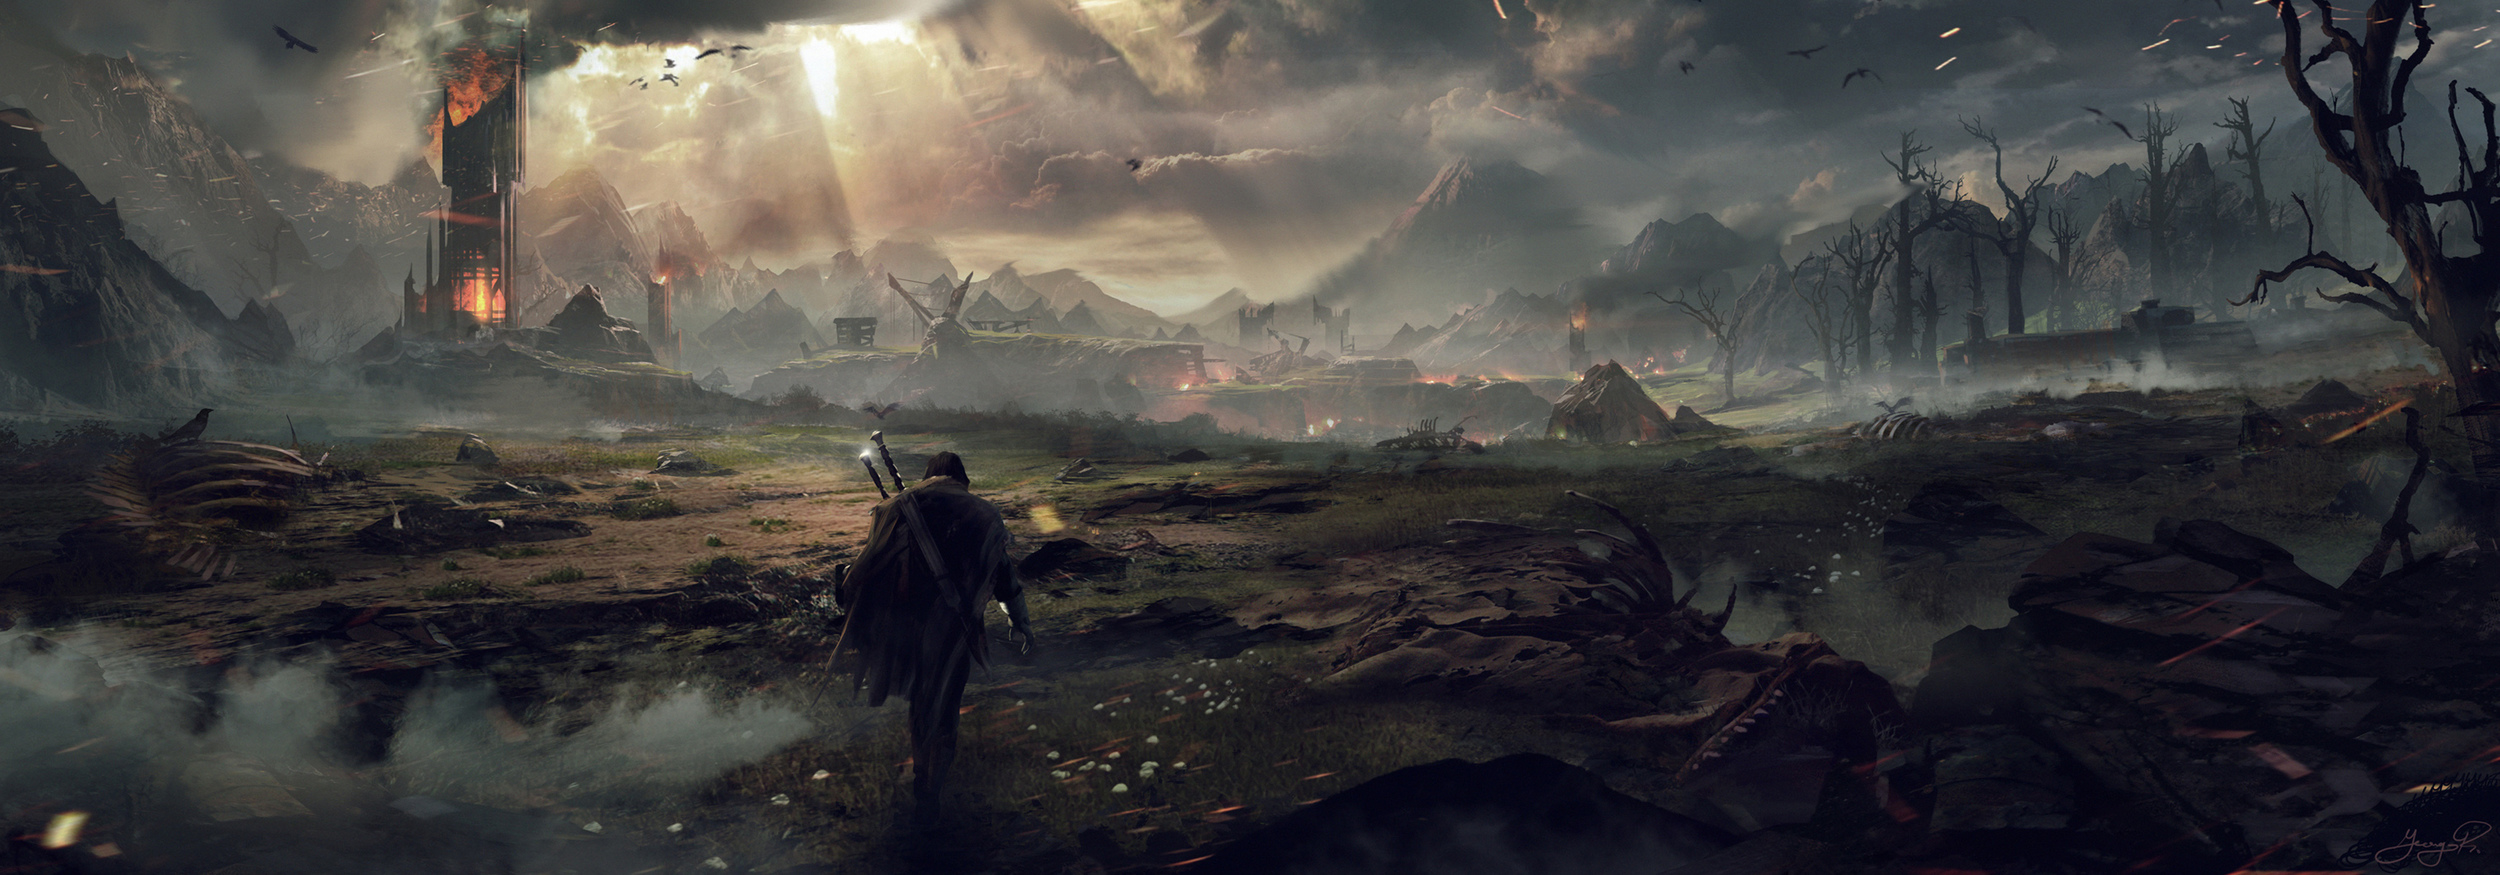 I think Mordor is a pretty accurate image for the present American political landscape.